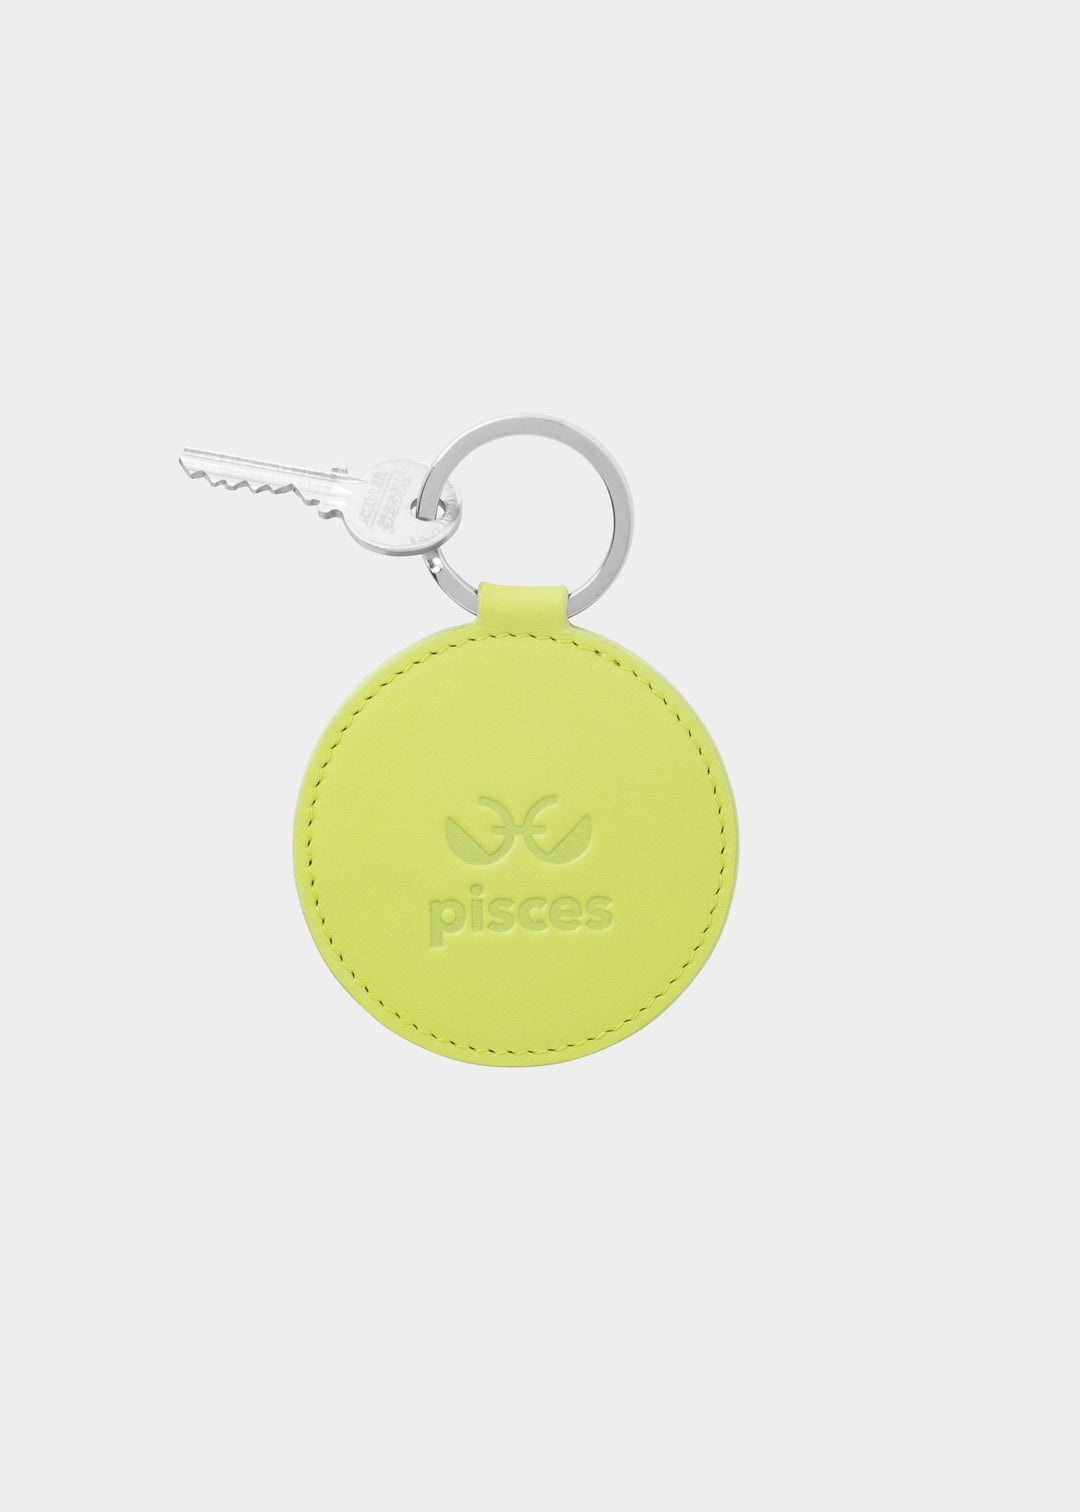 Pisces Key Keeper Front